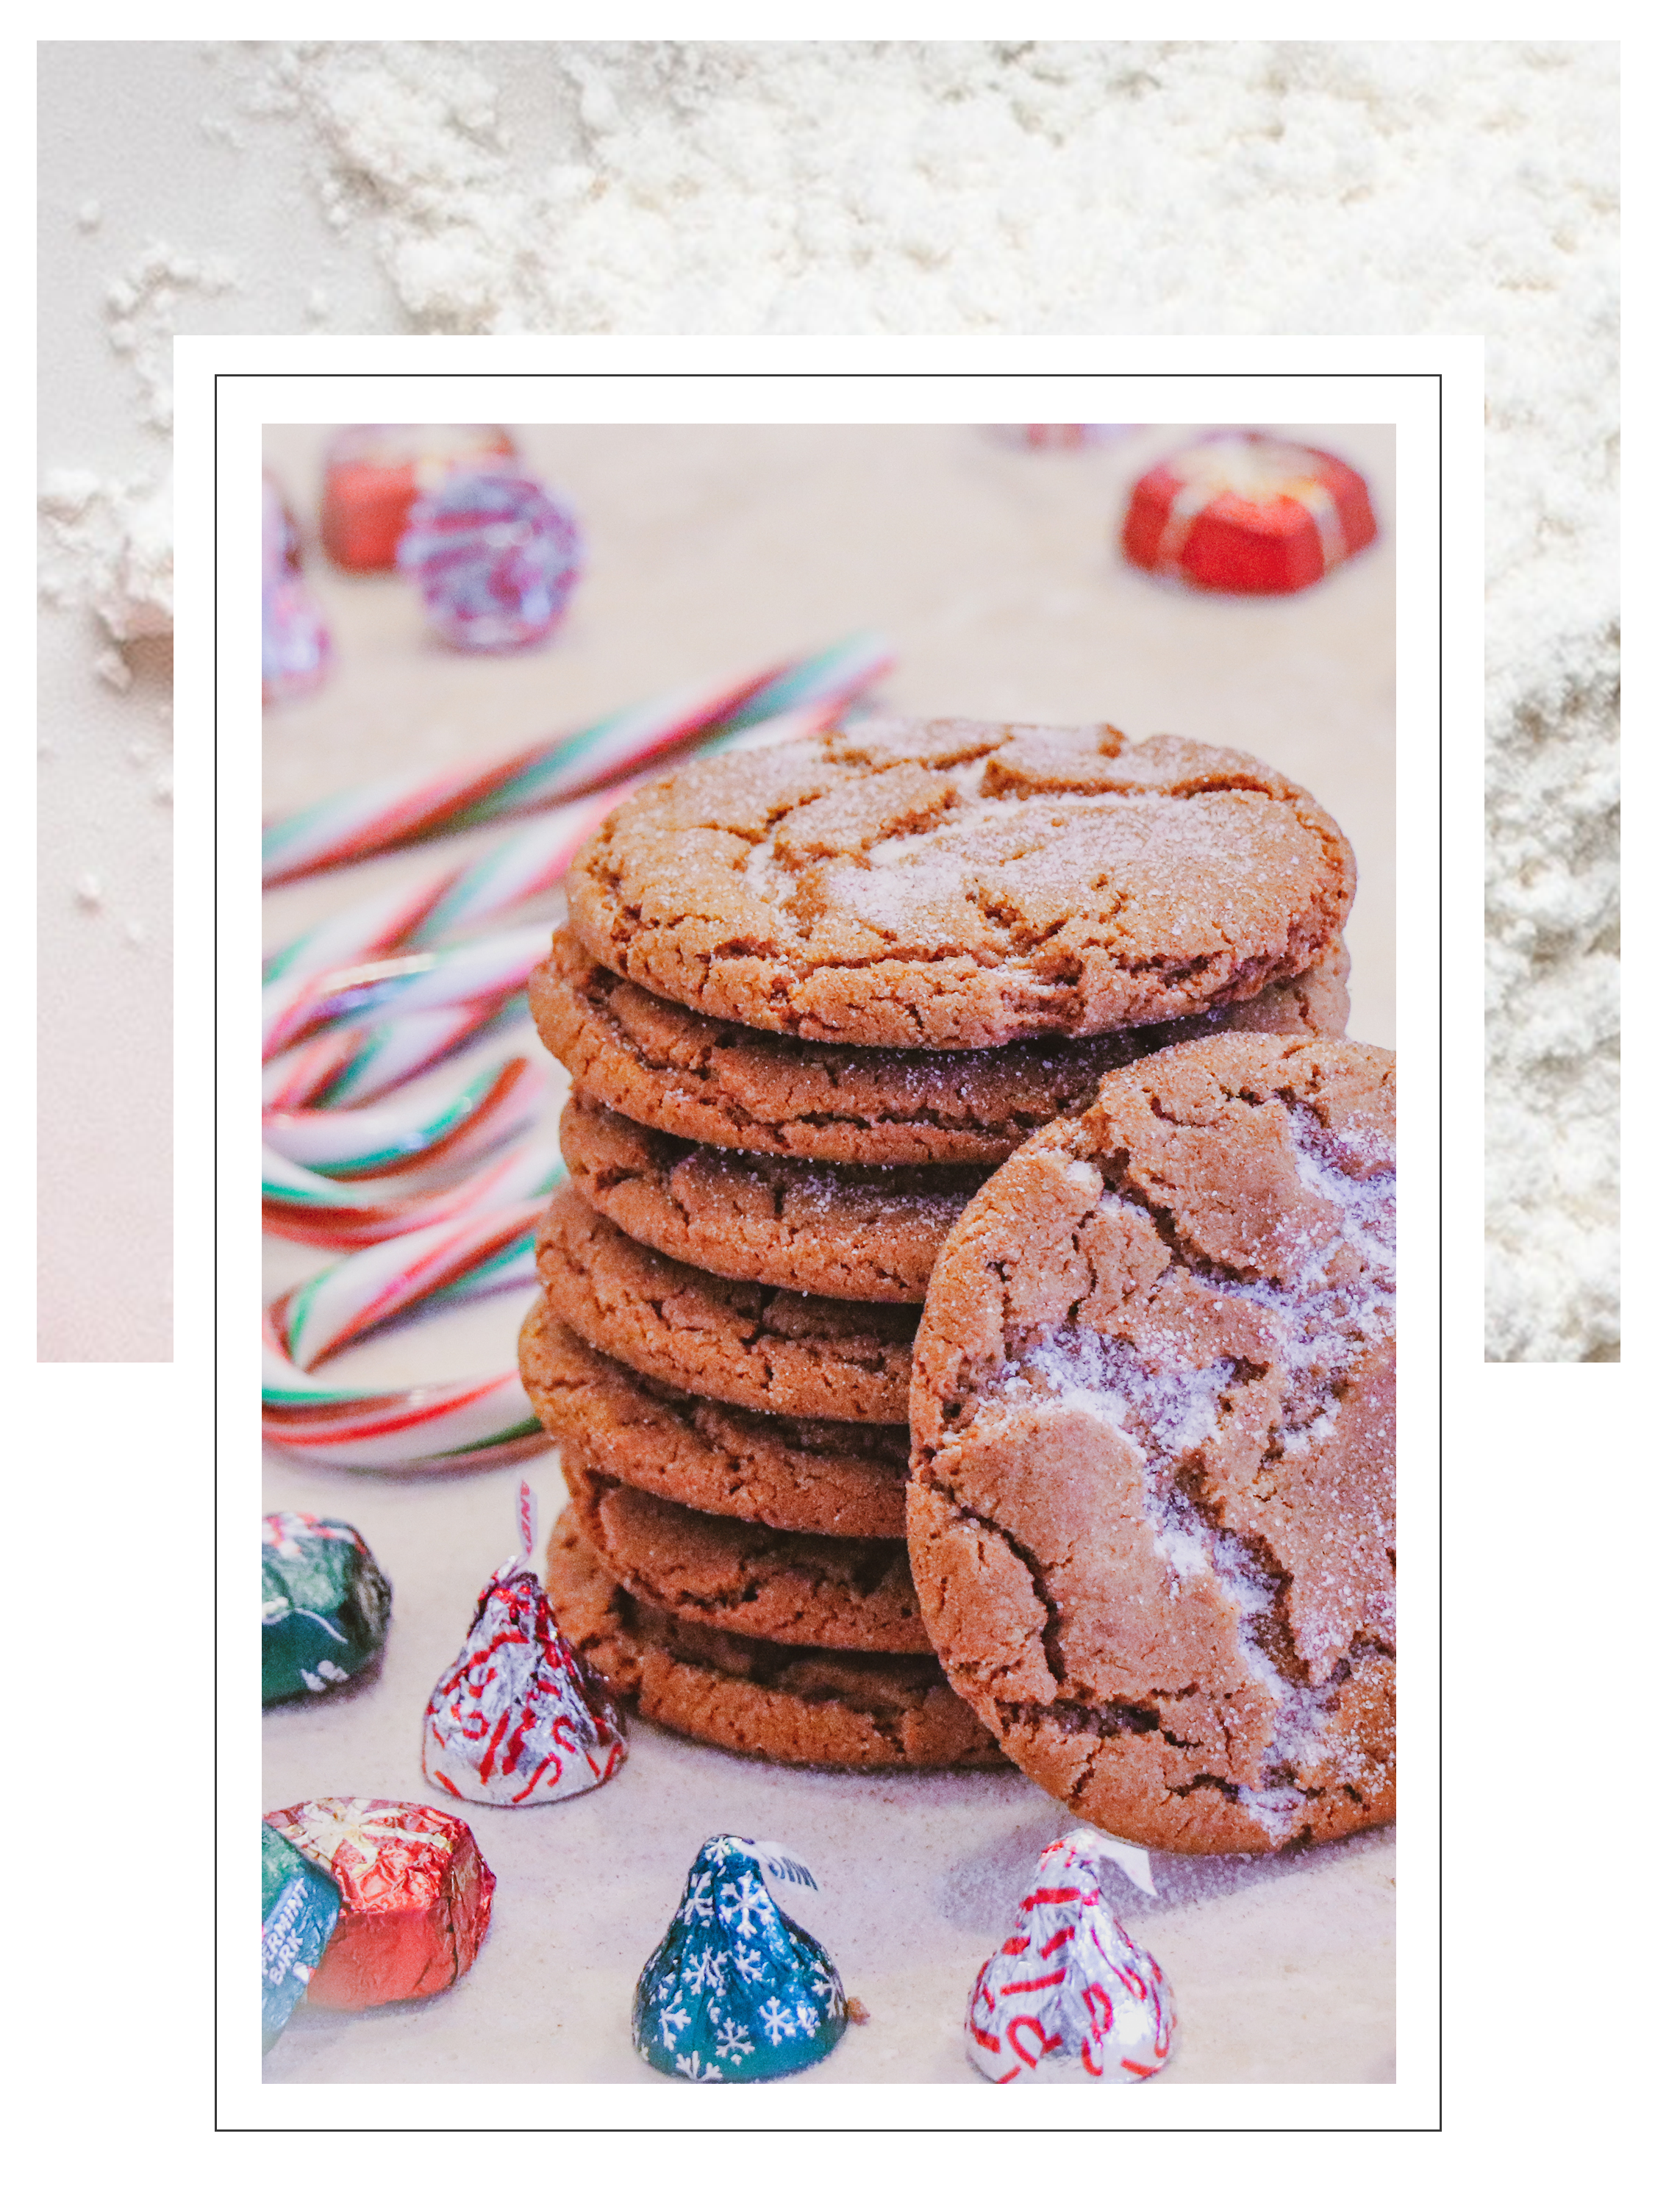 CHEWY GINGER MOLASSES COOKIES - I'm so excited to be blogging about food again. This recipe has always been one of my faves, but it's extra special to me now because it's the first recipe I ever made with my daughter Jemma.